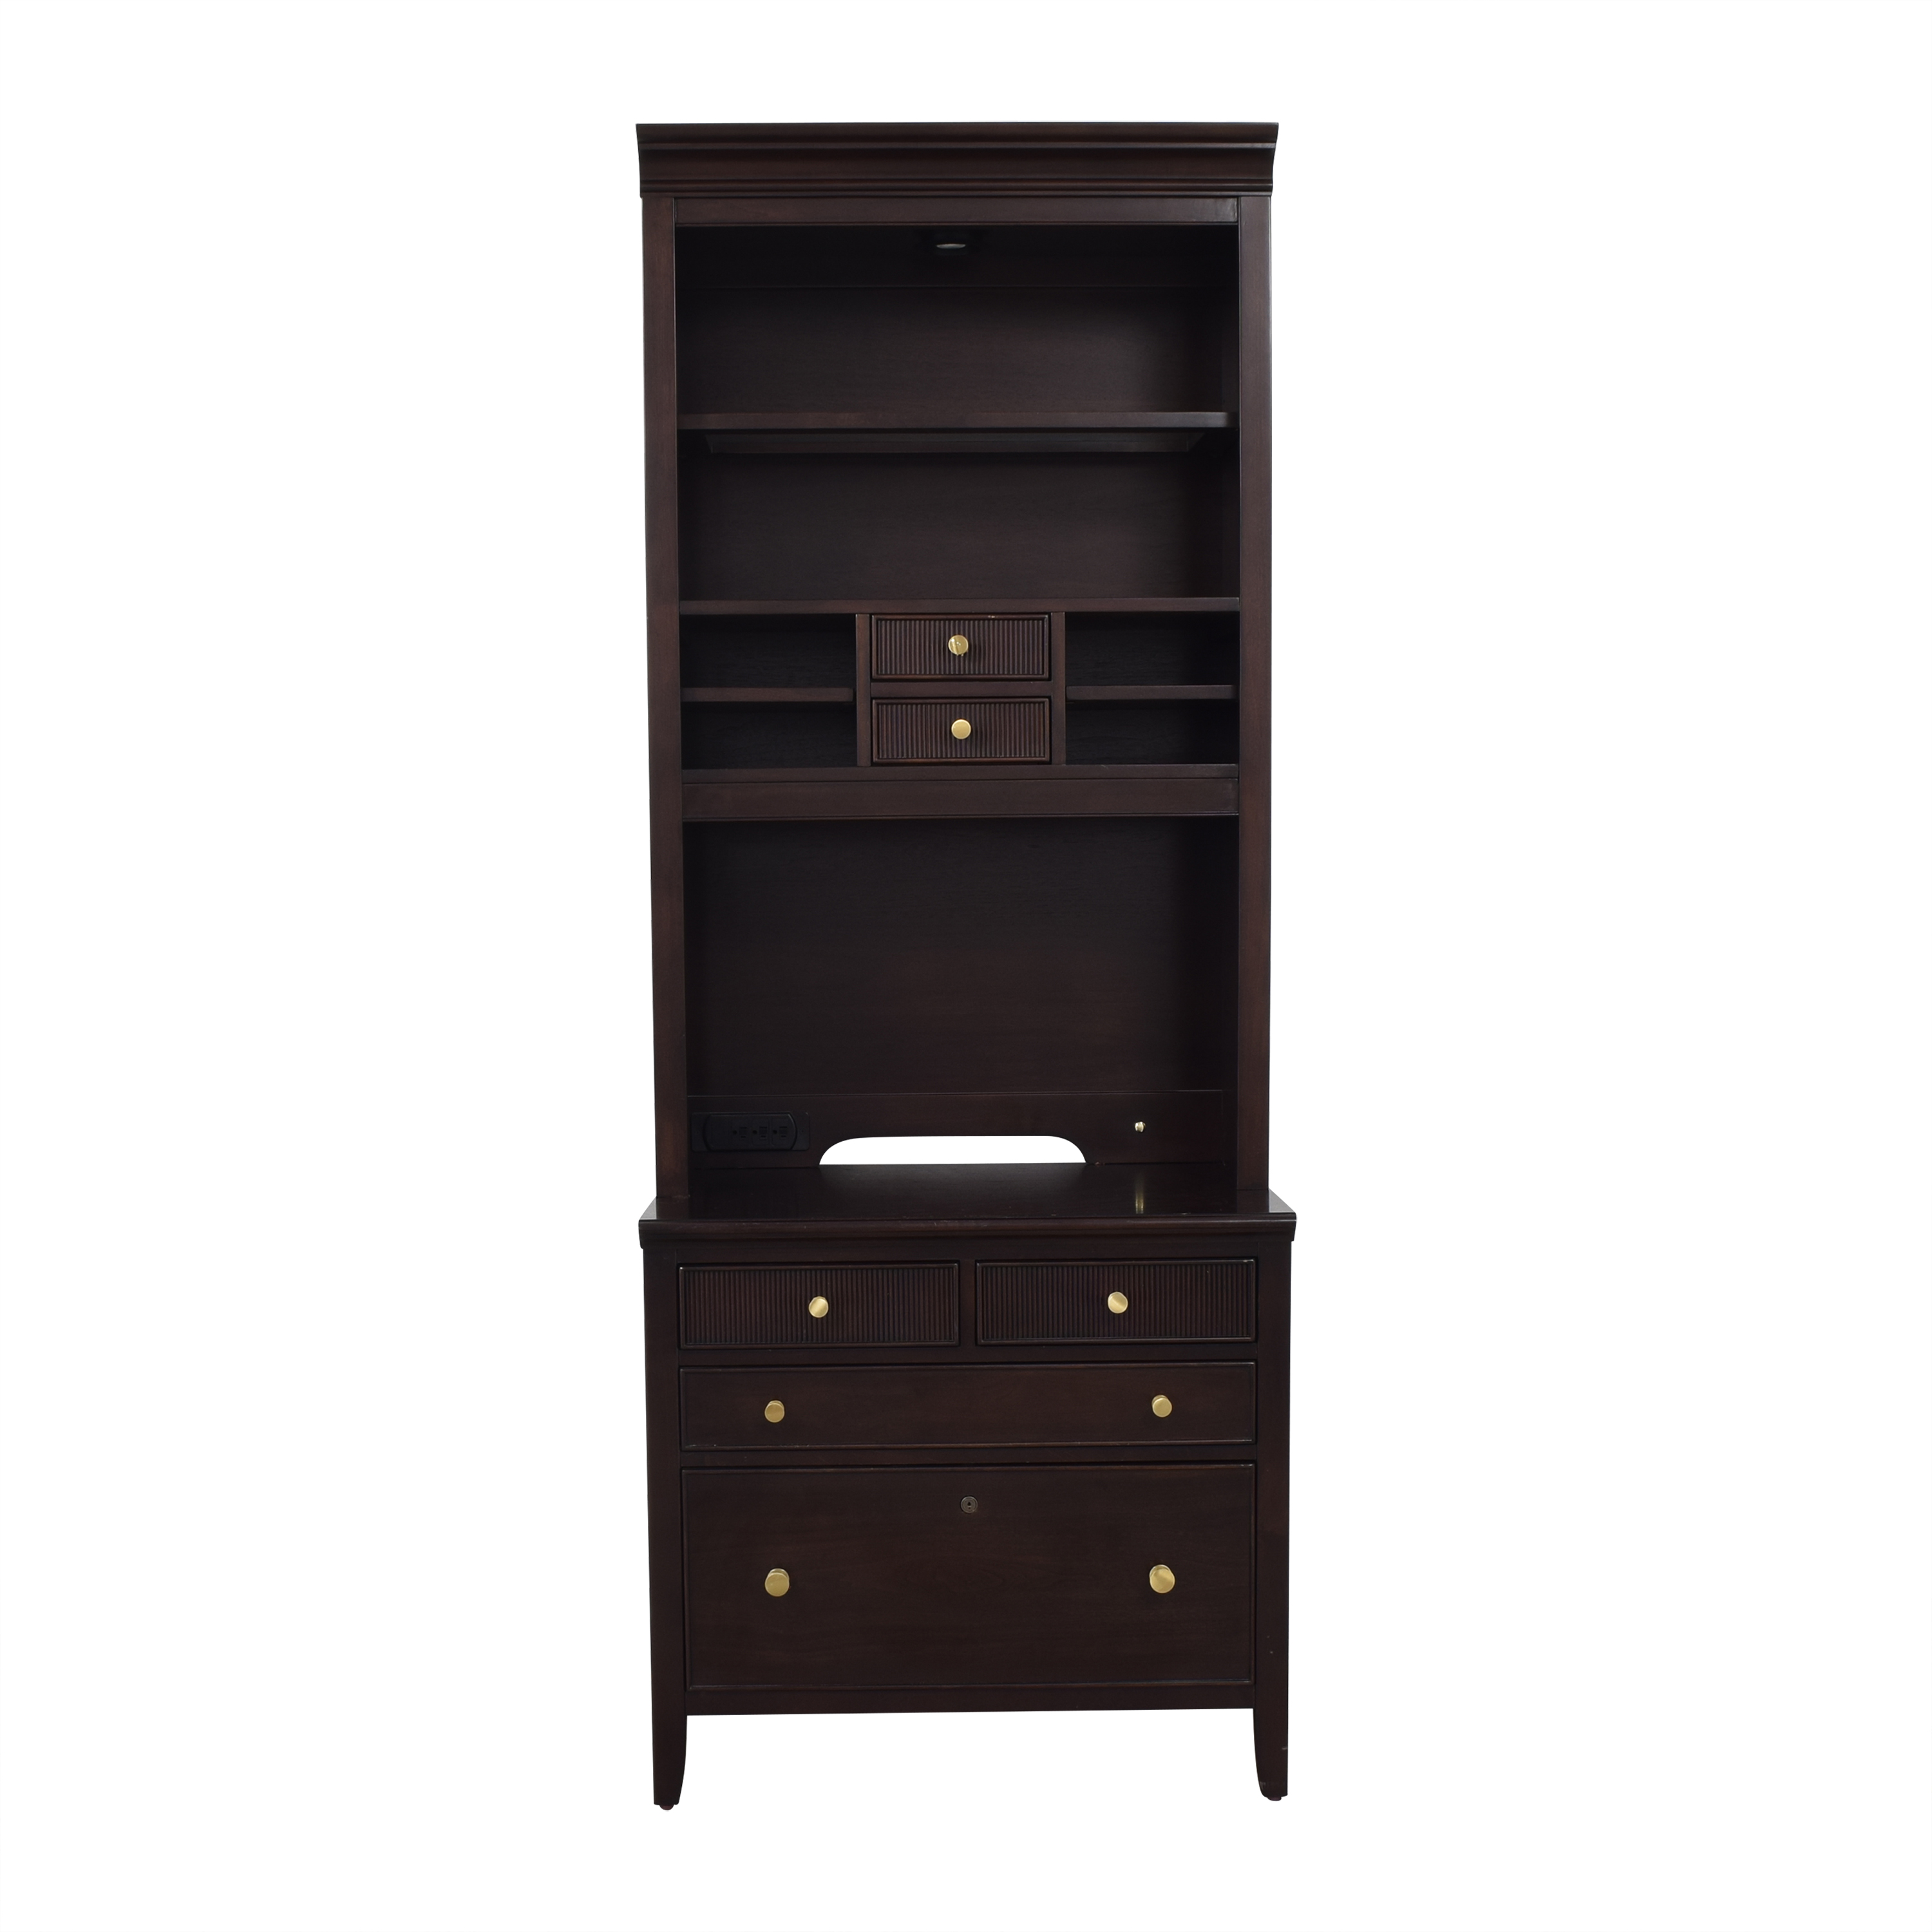 Stanley Furniture Stanley Furniture Cabinet with Hutch ma